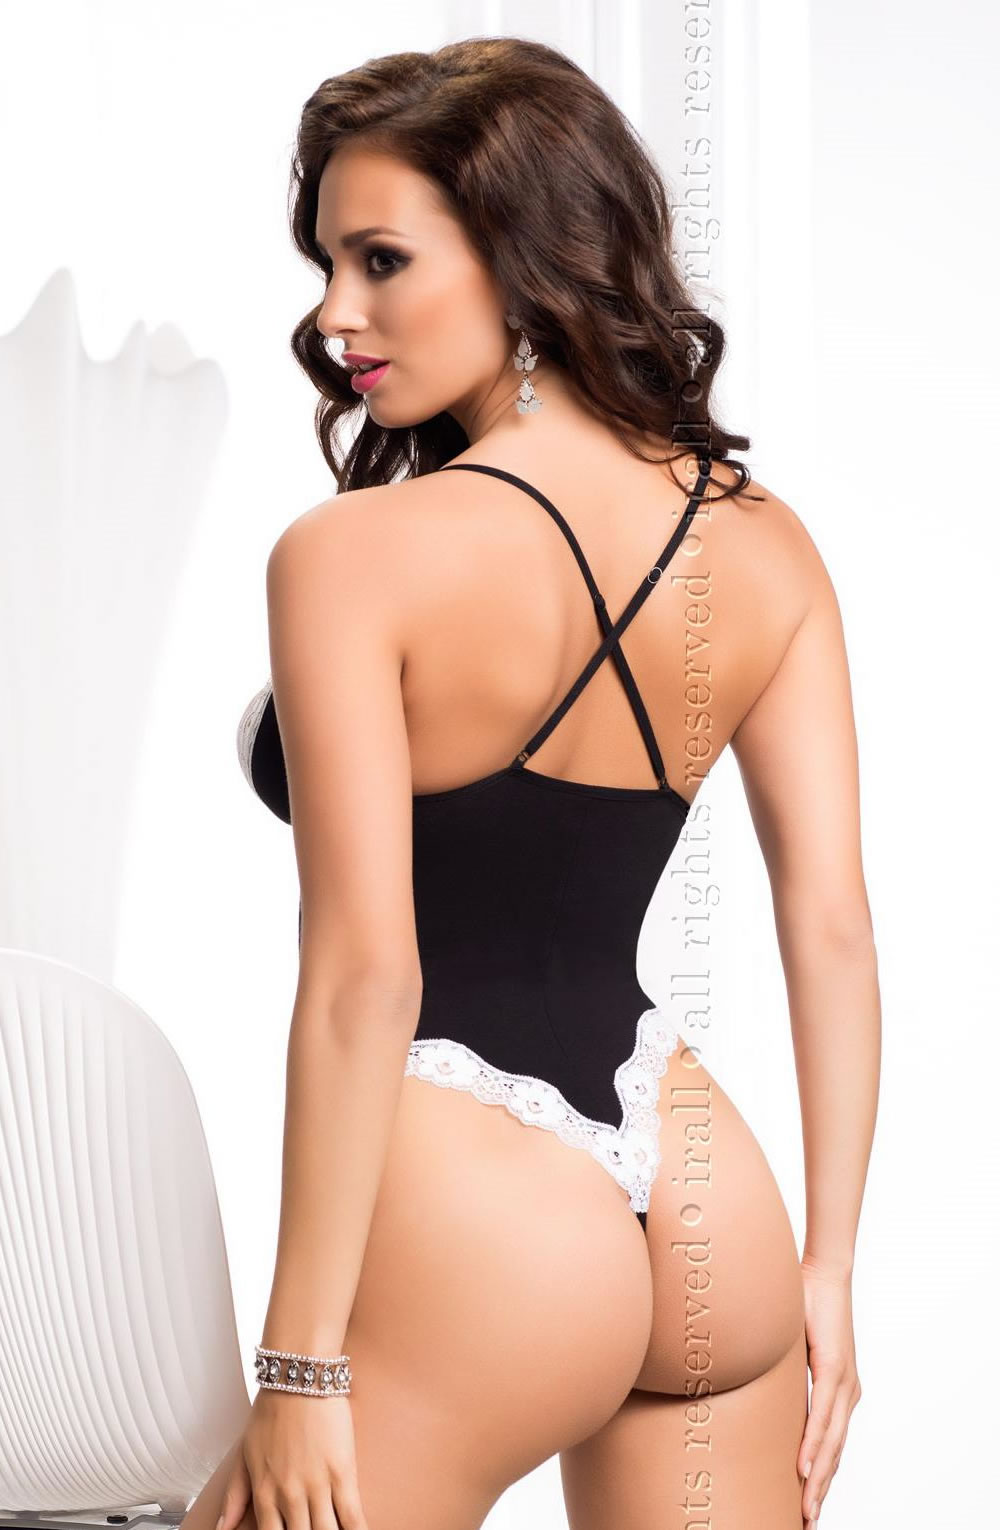 Show off your cheeky side. A wildly erotic Alexis body made from black viscose, which is very comfortable to wear.